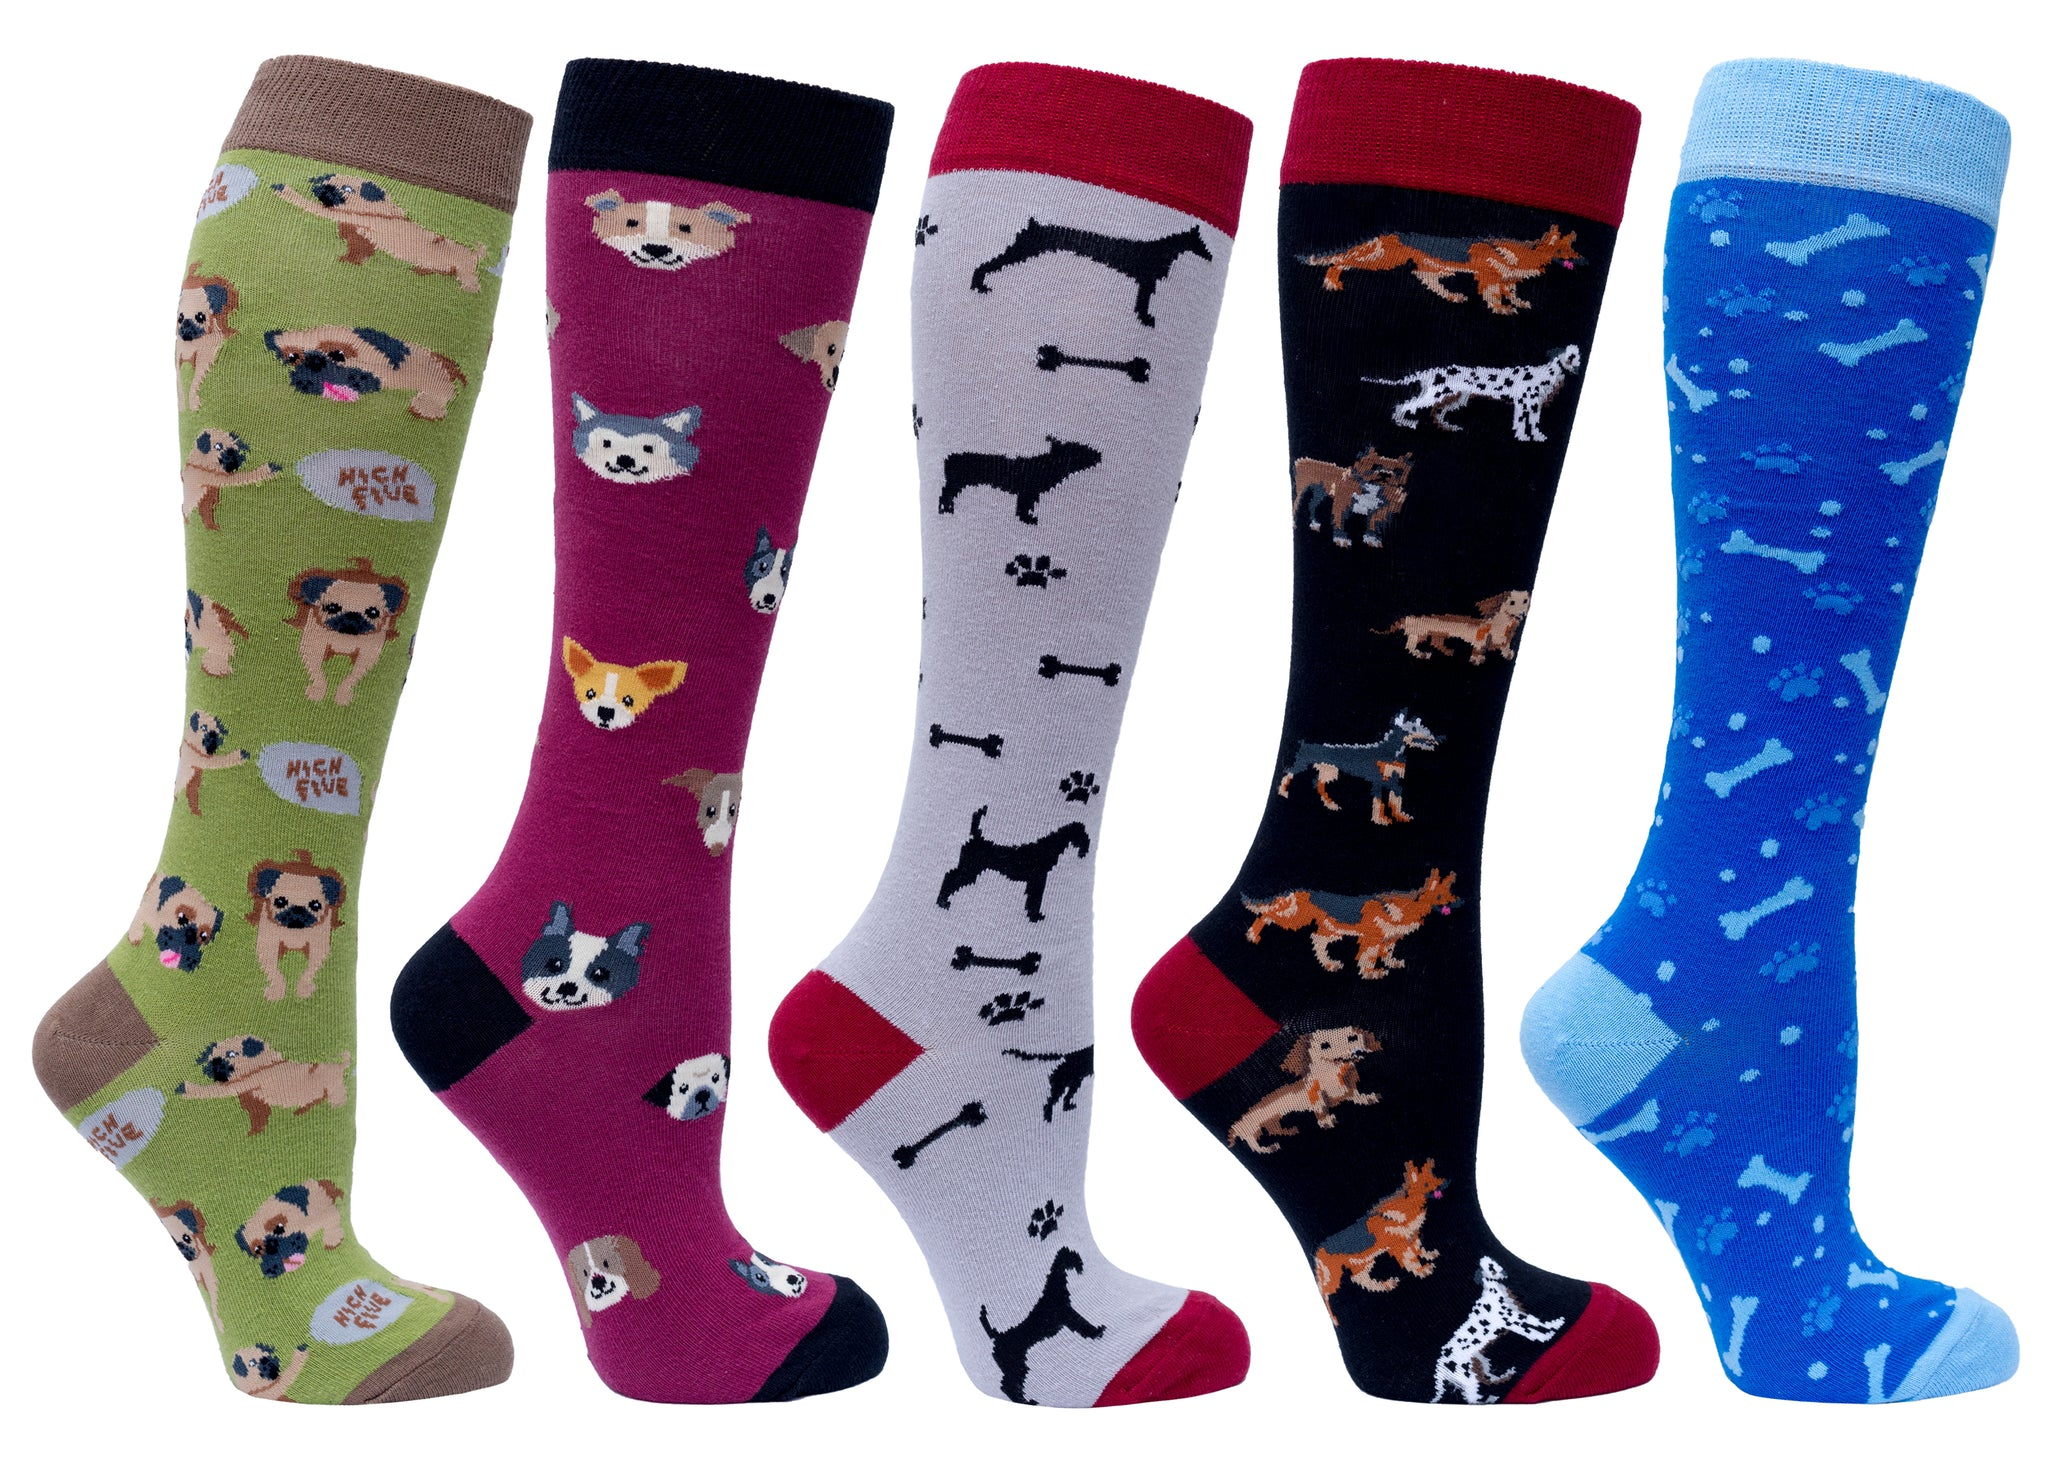 Women's Cute Dogs Knee High Socks Set colourful